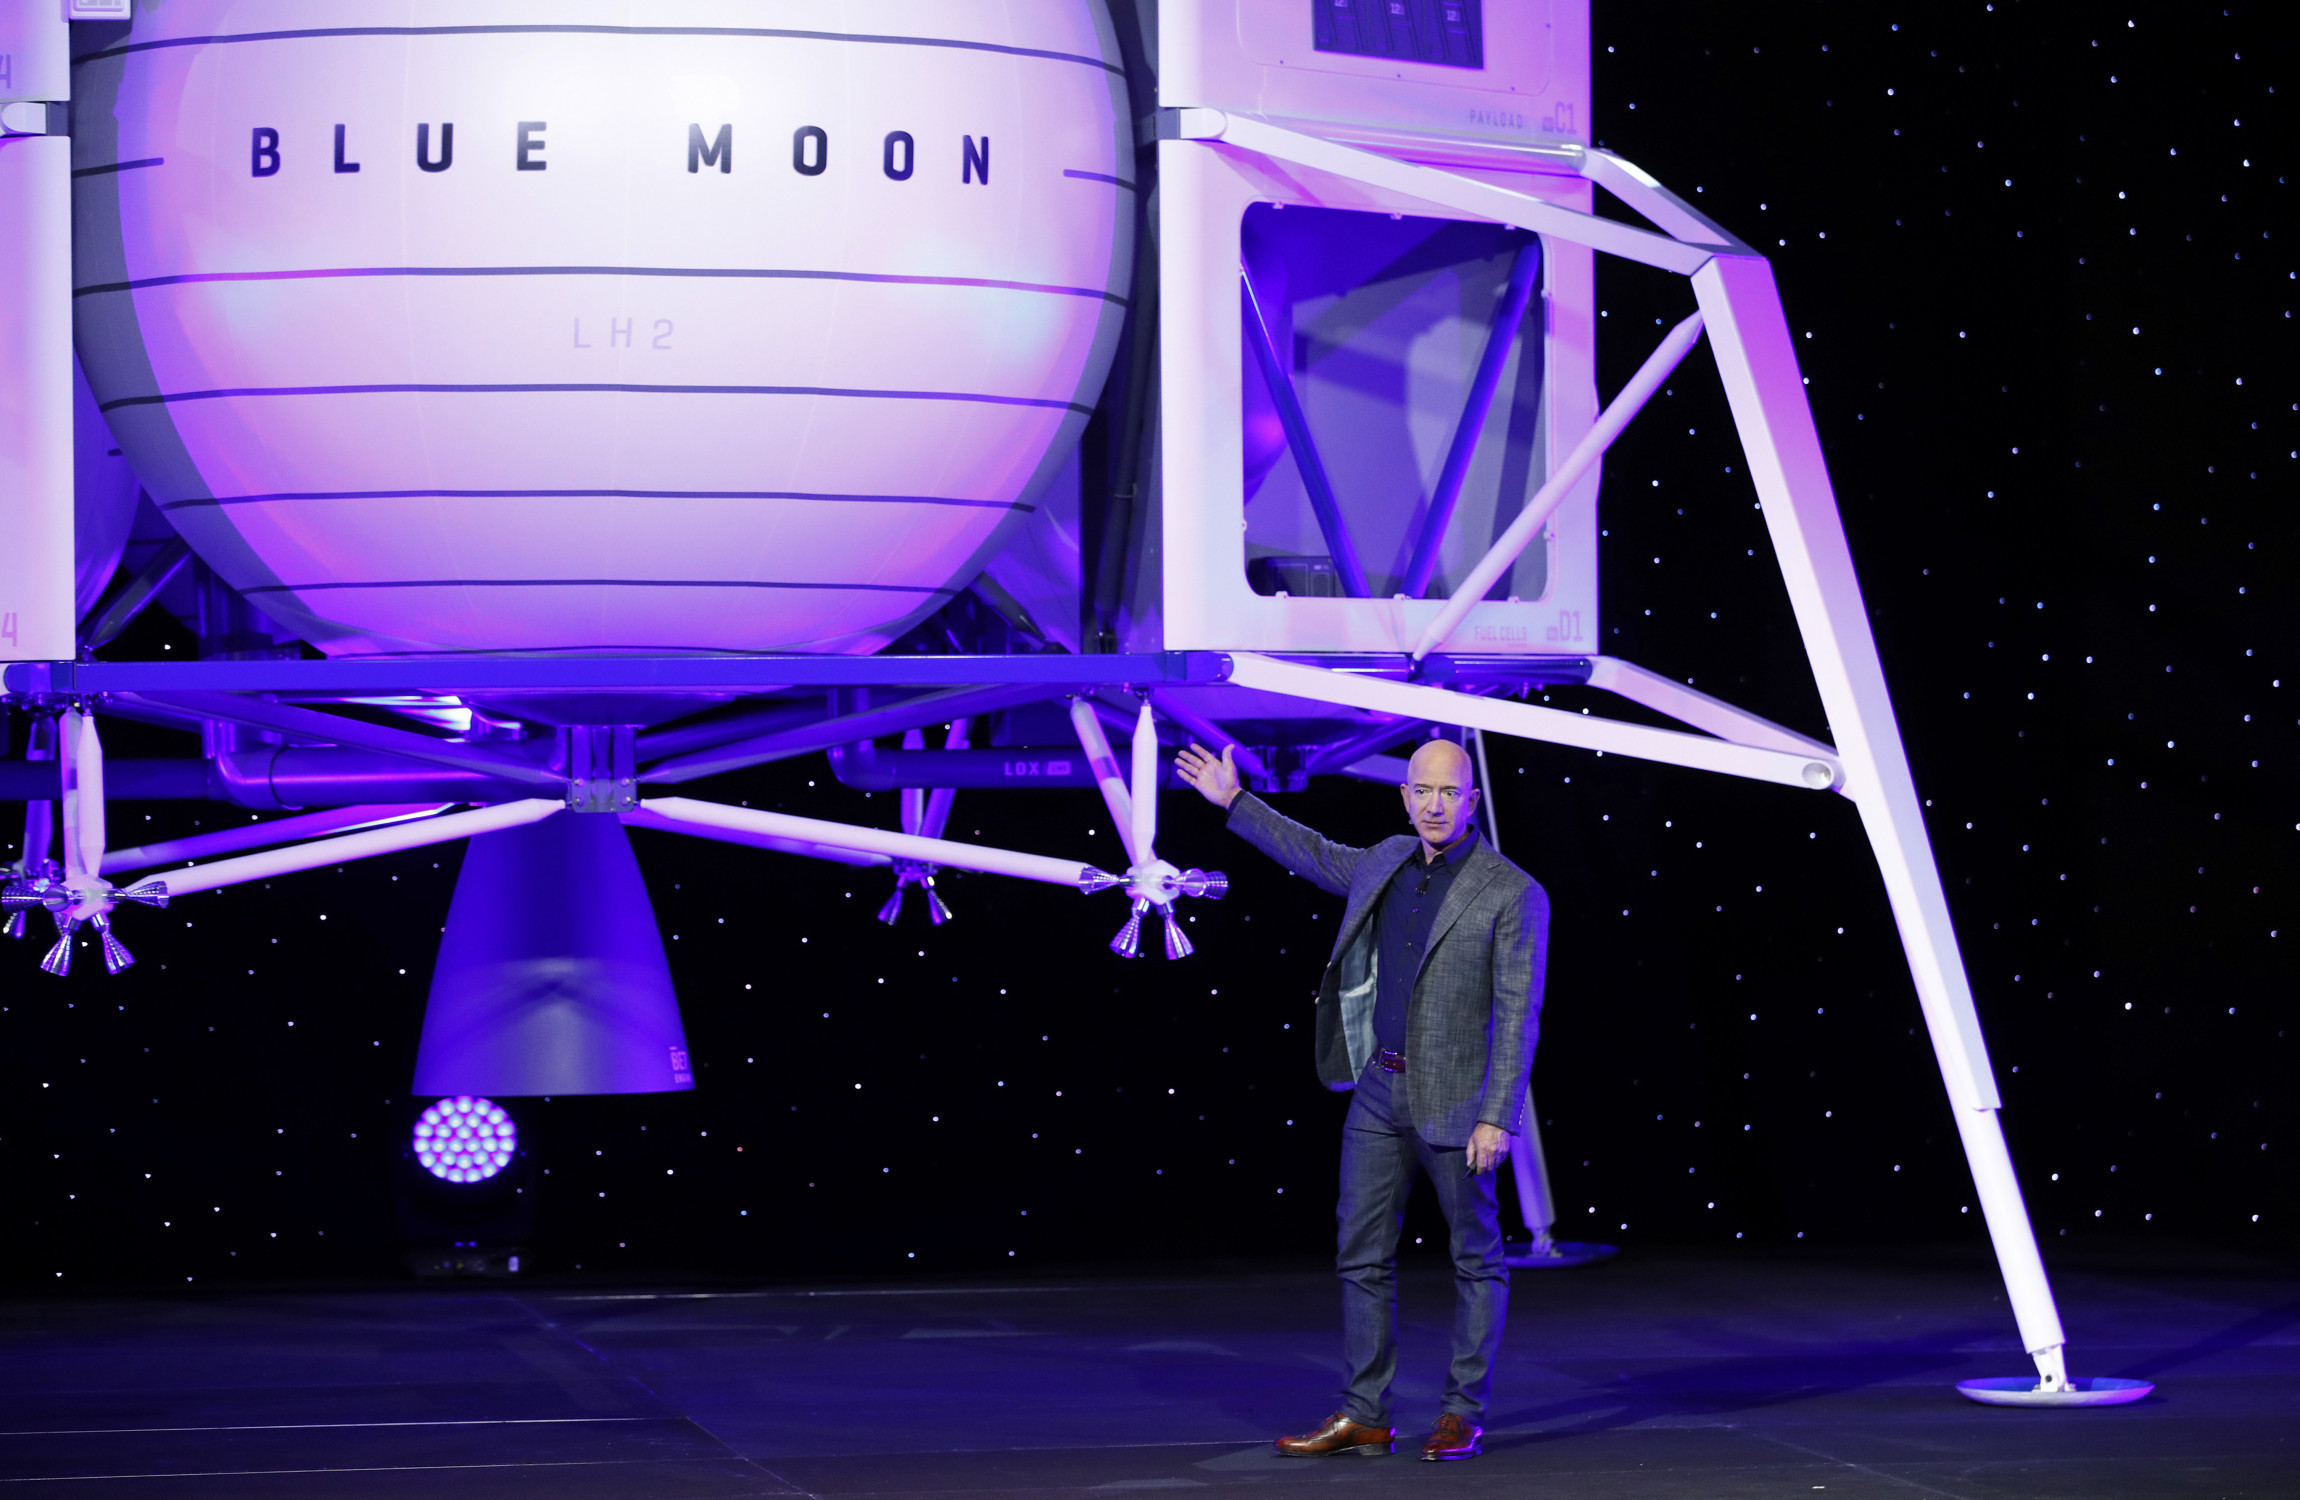 Jeff Bezos unveils giant lunar lander, will go to the moon